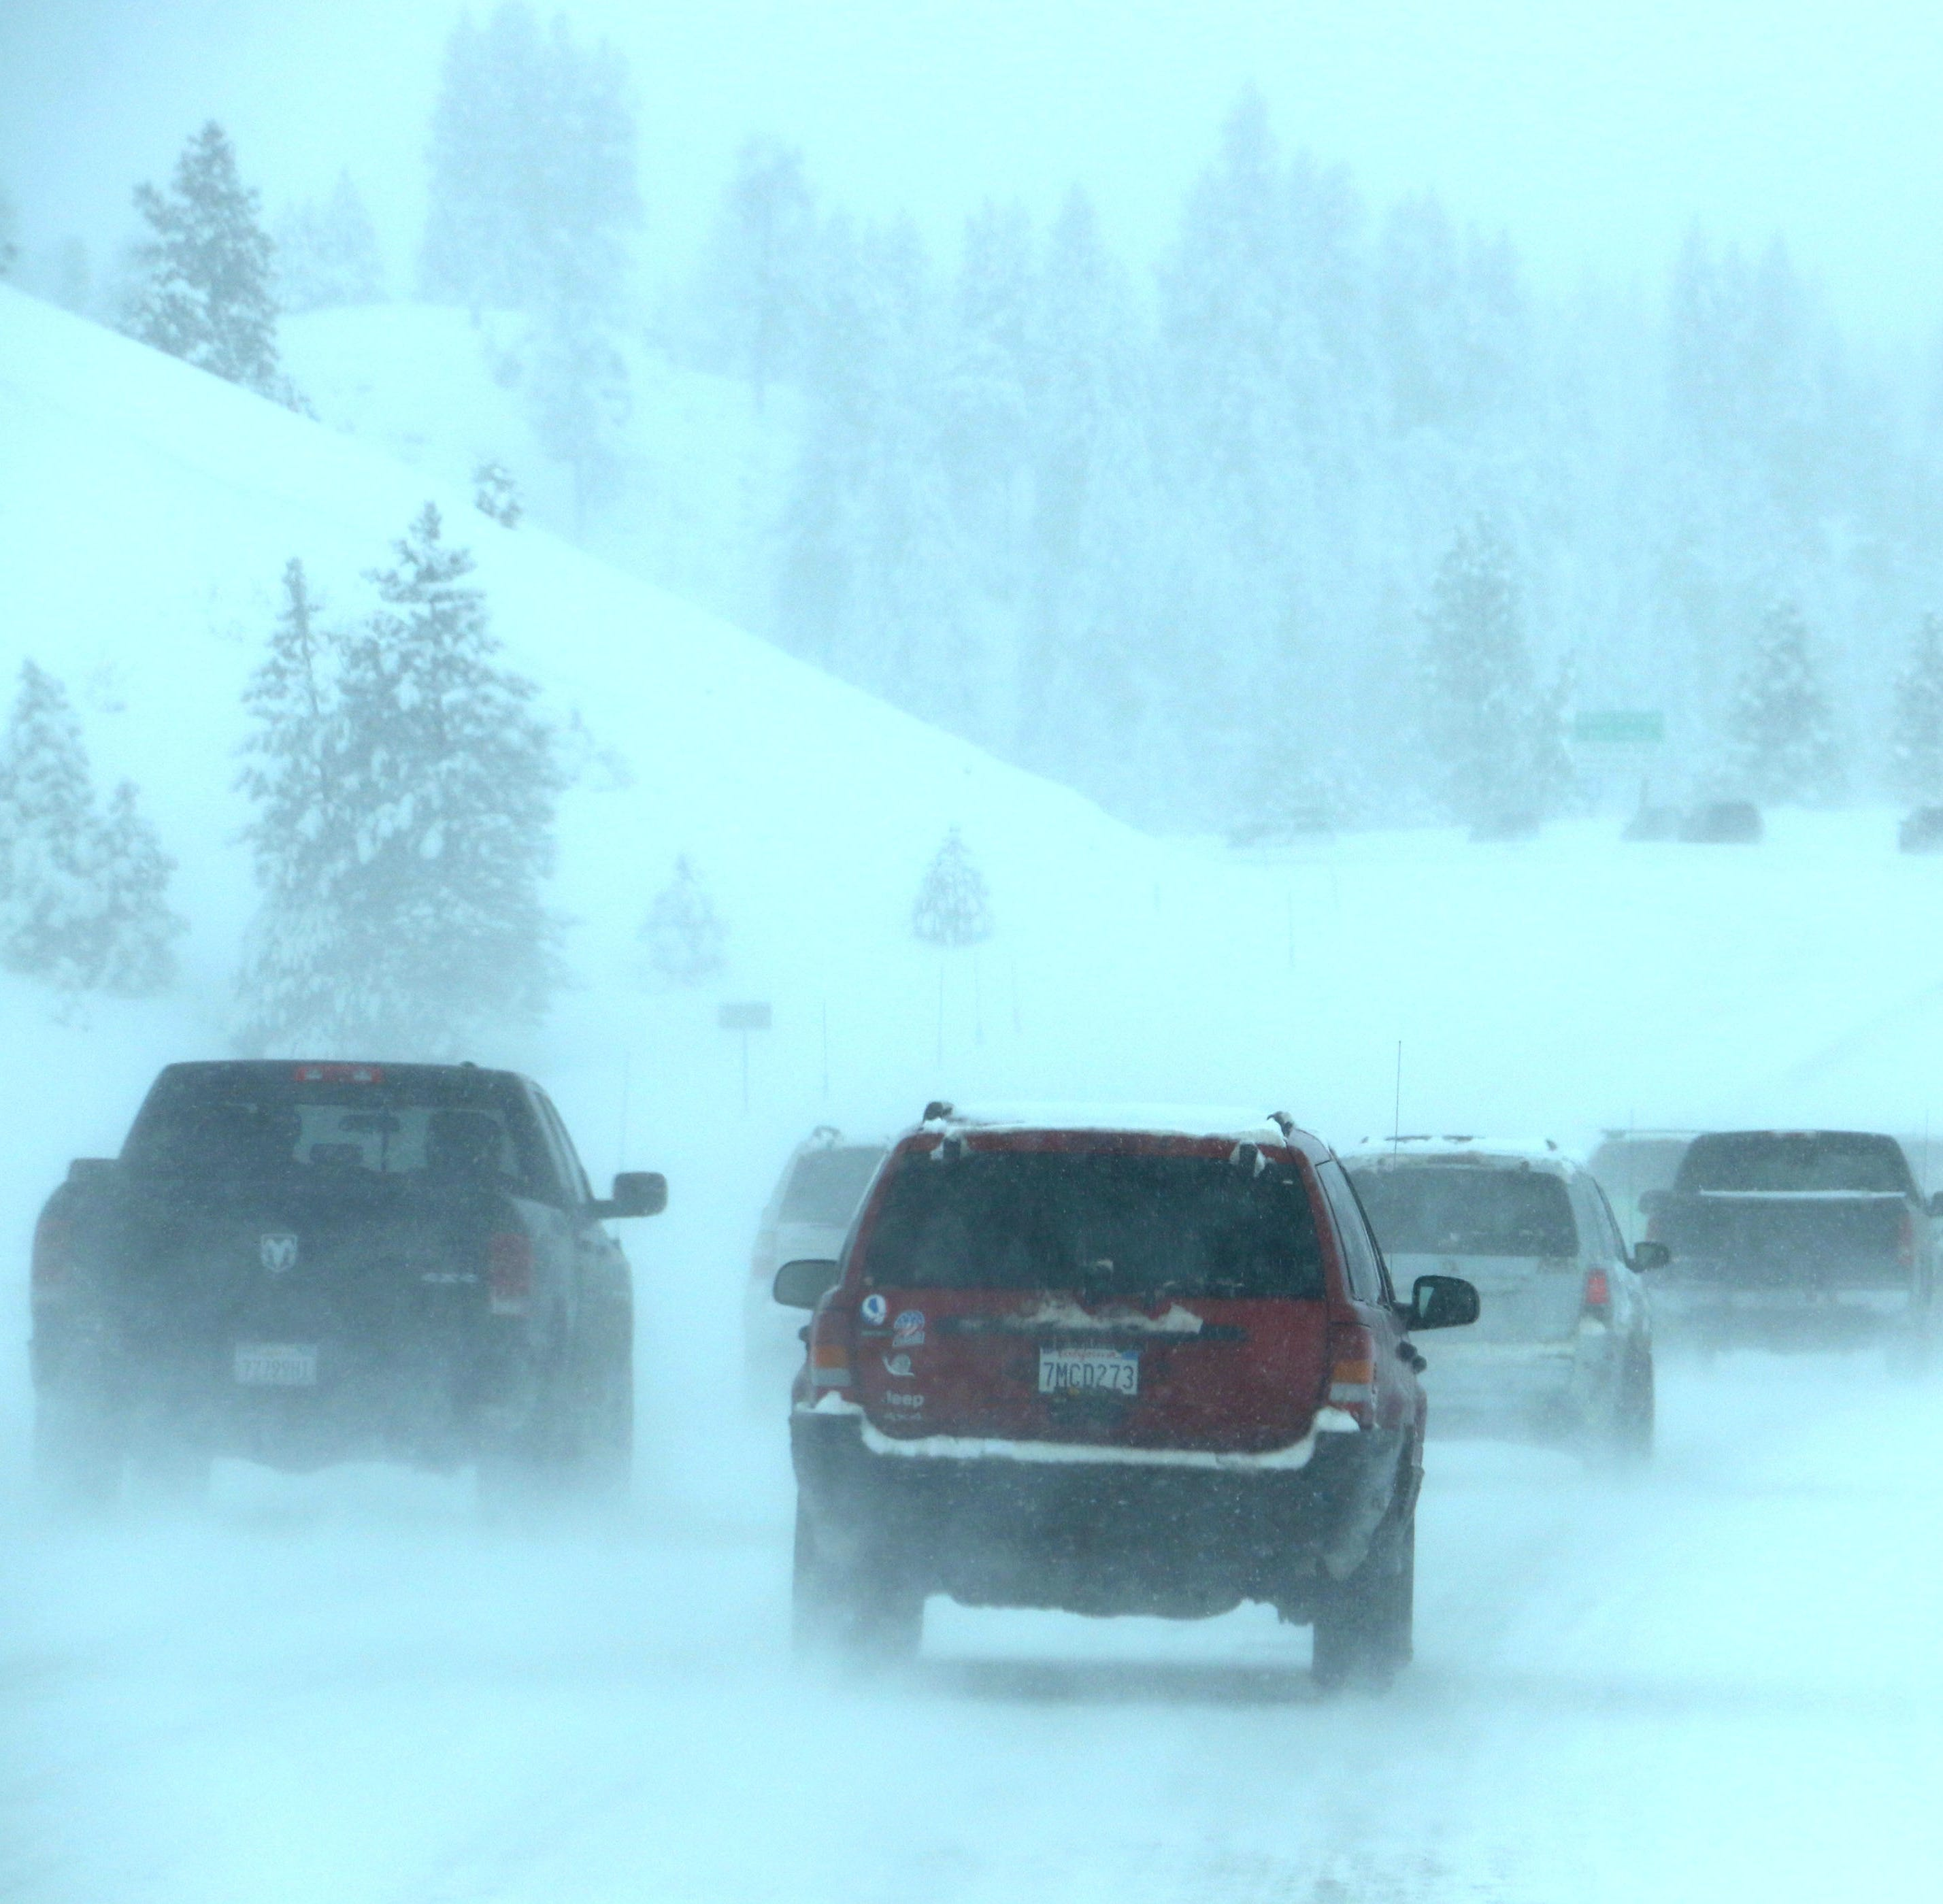 NWS: Winter storm warning issued, 1-2 feet of snow above 7,000 feet expected